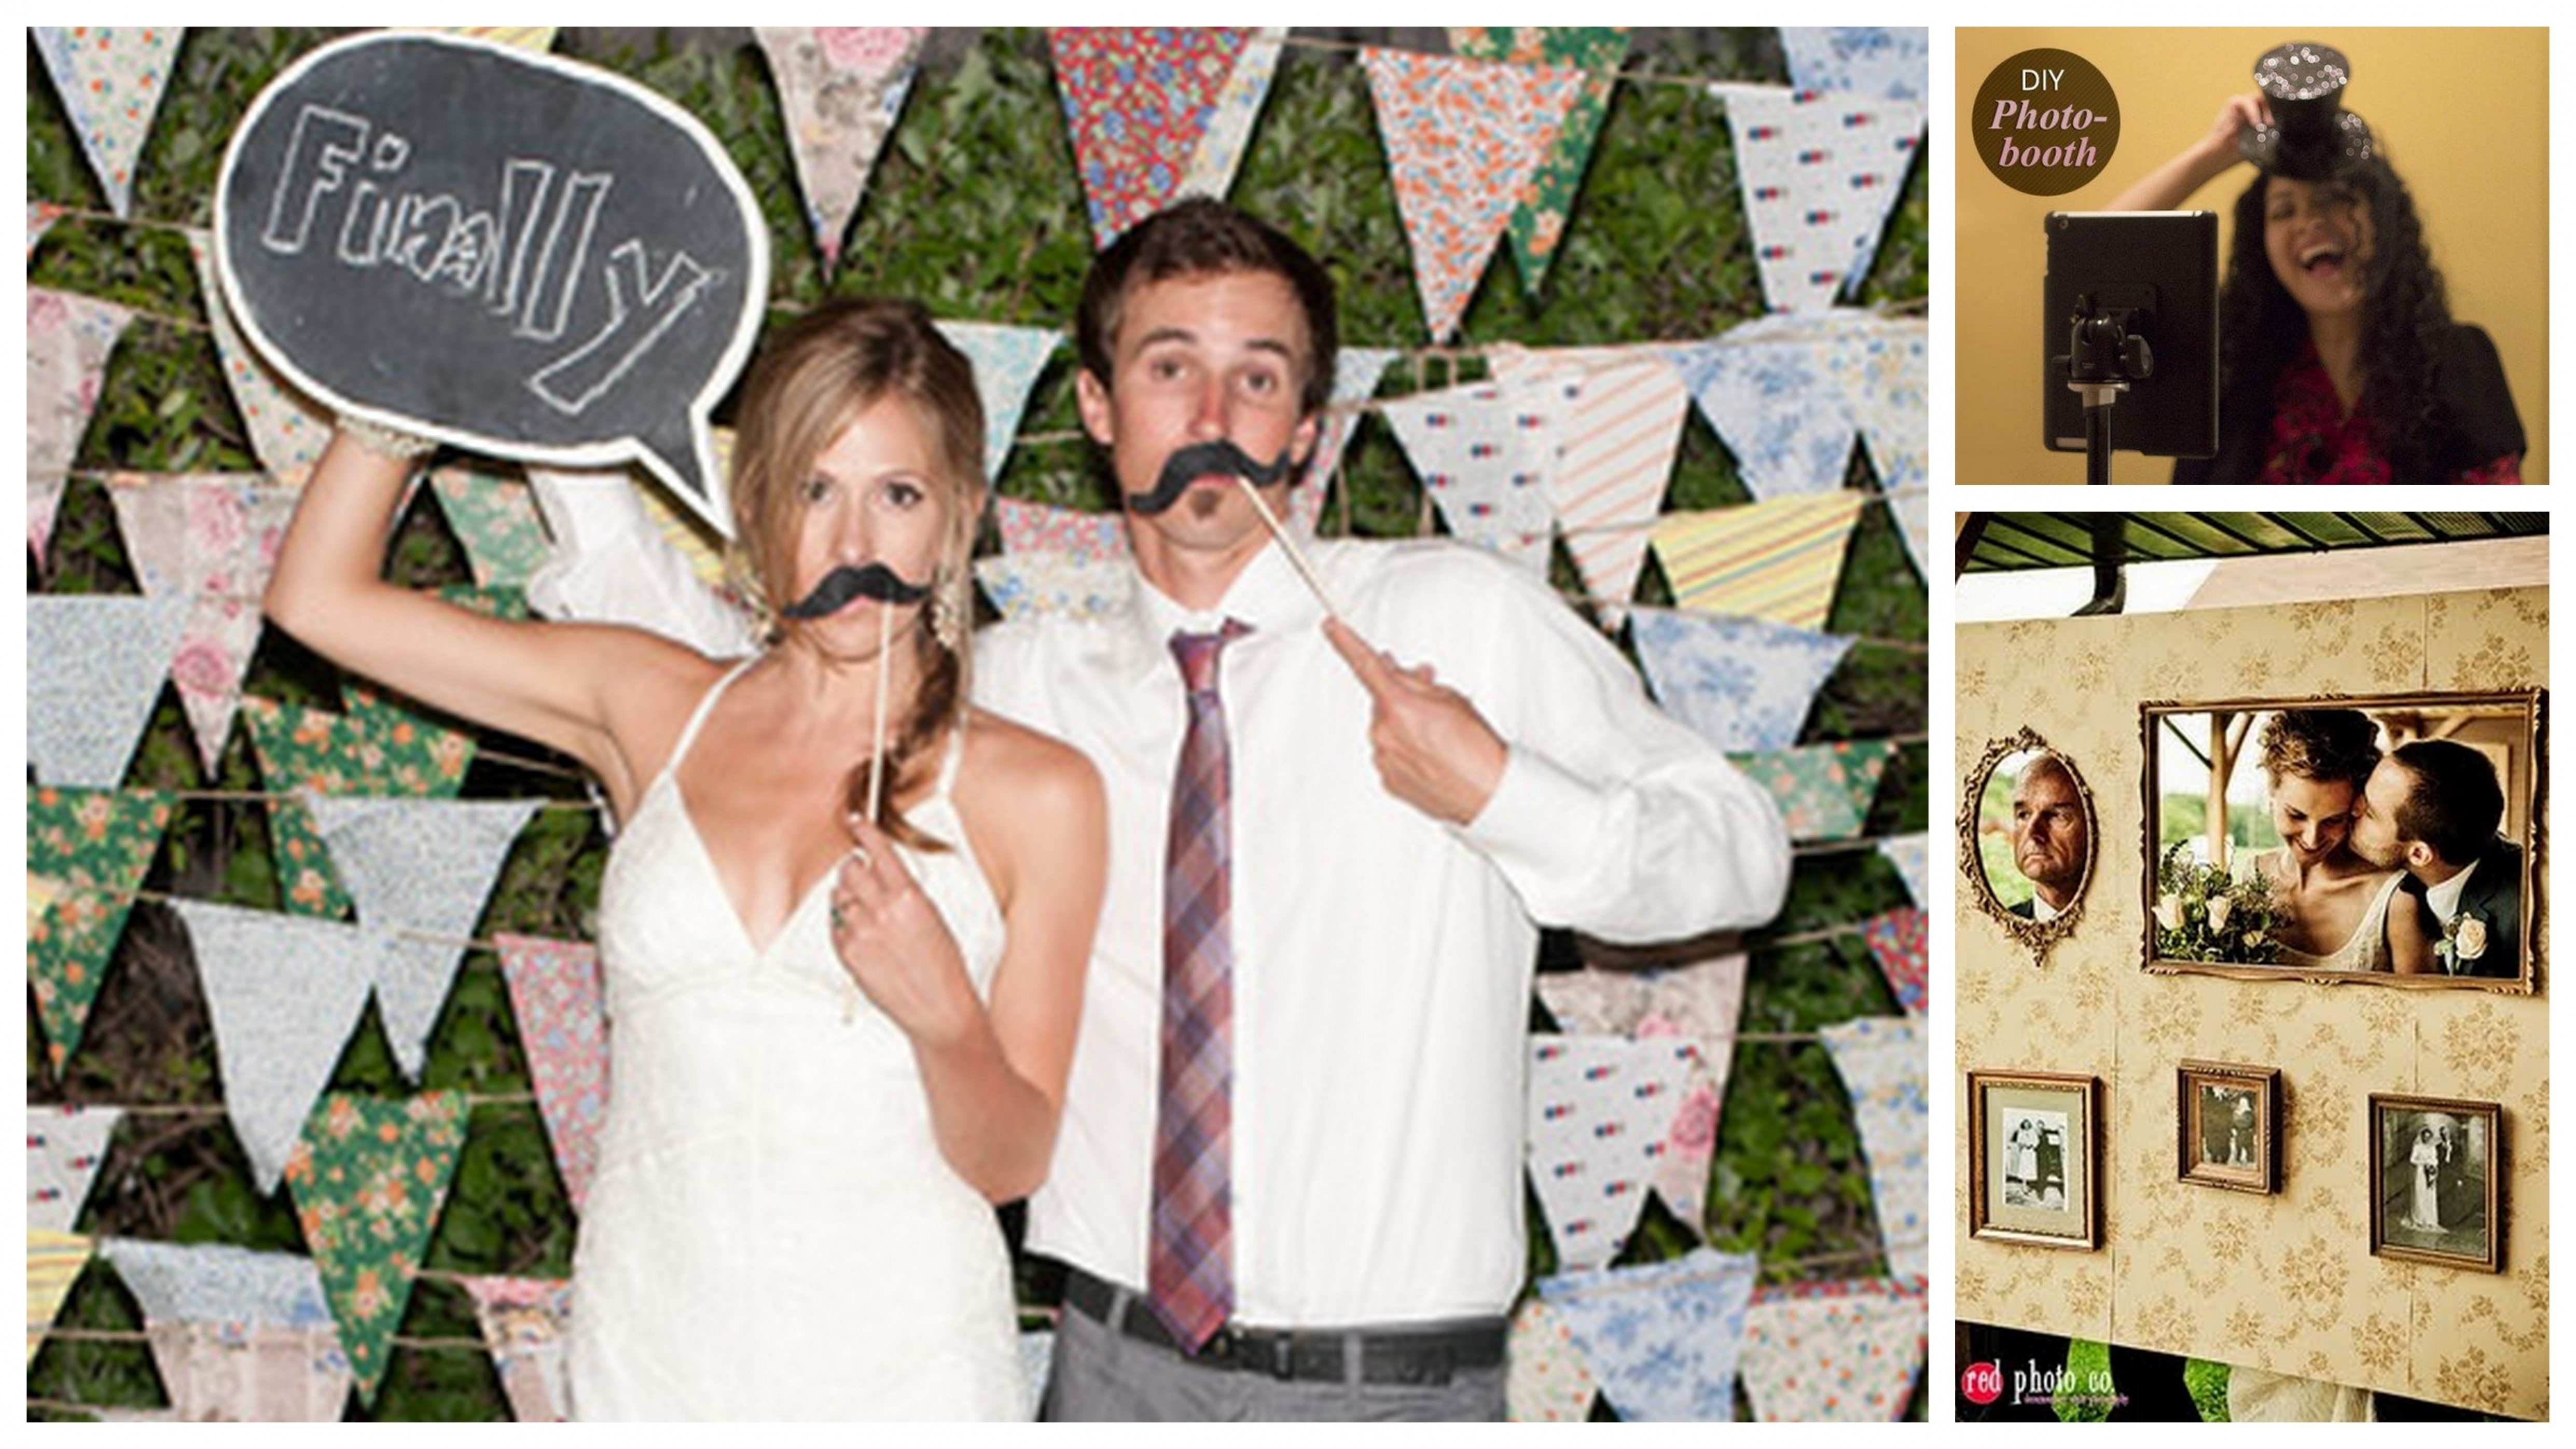 10 Perfect Photo Booth Ideas For Wedding unique photo booth ideas keith watson events photo booth ideas 2021